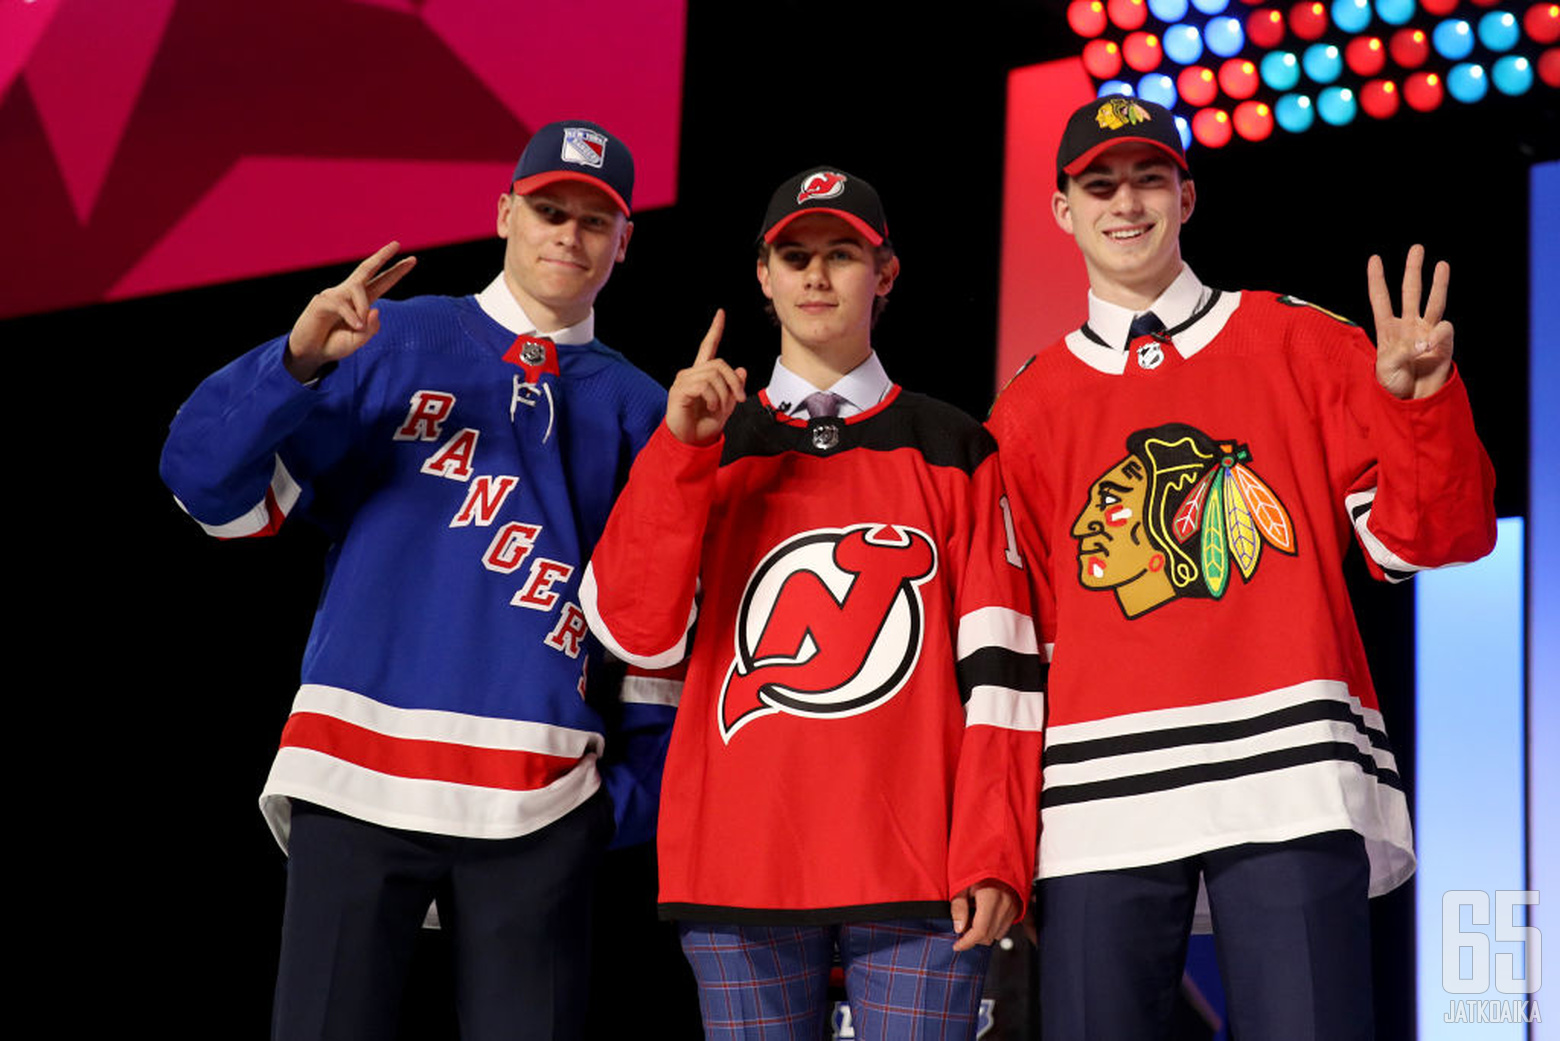 VANCOUVER, BRITISH COLUMBIA - JUNE 21:  (L-R) Kaapo Kakko, second overall pick by the New York Rangers, Jack Hughes, first overall pick by the New Jersey Devils, and Kirby Dach, third overall pick by the Chicago Blackhawks hold up their fingers of their p